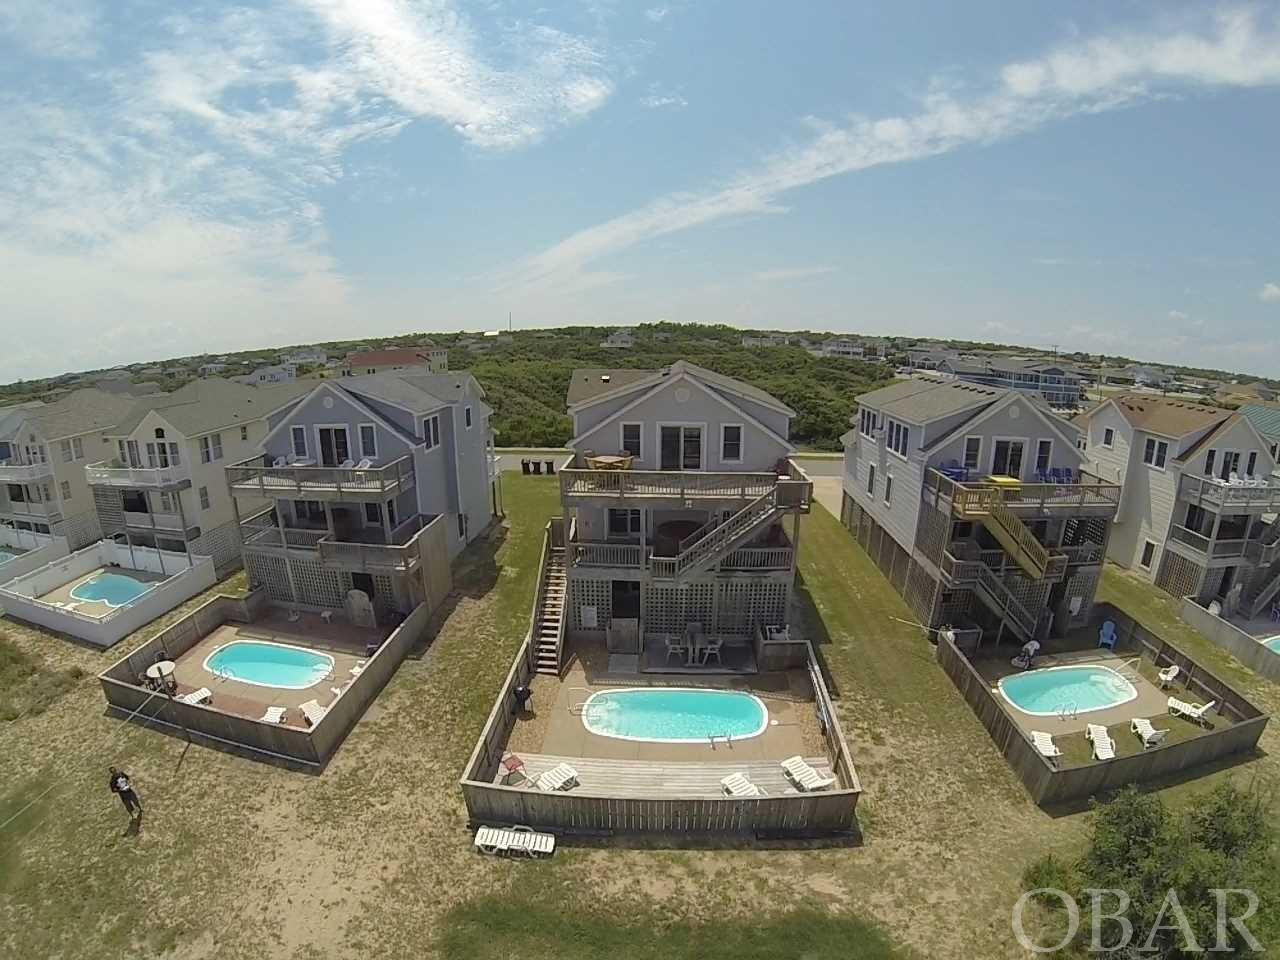 This 4 bedroom, 3 1/2 bath home is only 2 lots from the ocean and has incredible ocean views! Features include a private pool, hot tub, game room with tiki bar and pool table, 2 master suites with ocean views , gas fireplace and over $55,000 in seasonal rental income. The rental website is http://www.obxbreakers.com/. VRBO website - https://www.vrbo.com/286188  In the past 2 years the following updates were made: *Refrigerator  *Surround sound in ceiling *Refrigerator and hot water heater  *Thermostats  *pool pump *Hot tub control center/mother board and new ground wire and cover *New deck furniture  *Poolside deck *New lights exterior  *New roof on north side of house,  3tab 150 mph shingles  *New Stainmaster plush cut pile carpet throughout  *Custom paint *Comforters *New flat screen tv's throughout  *New grill .